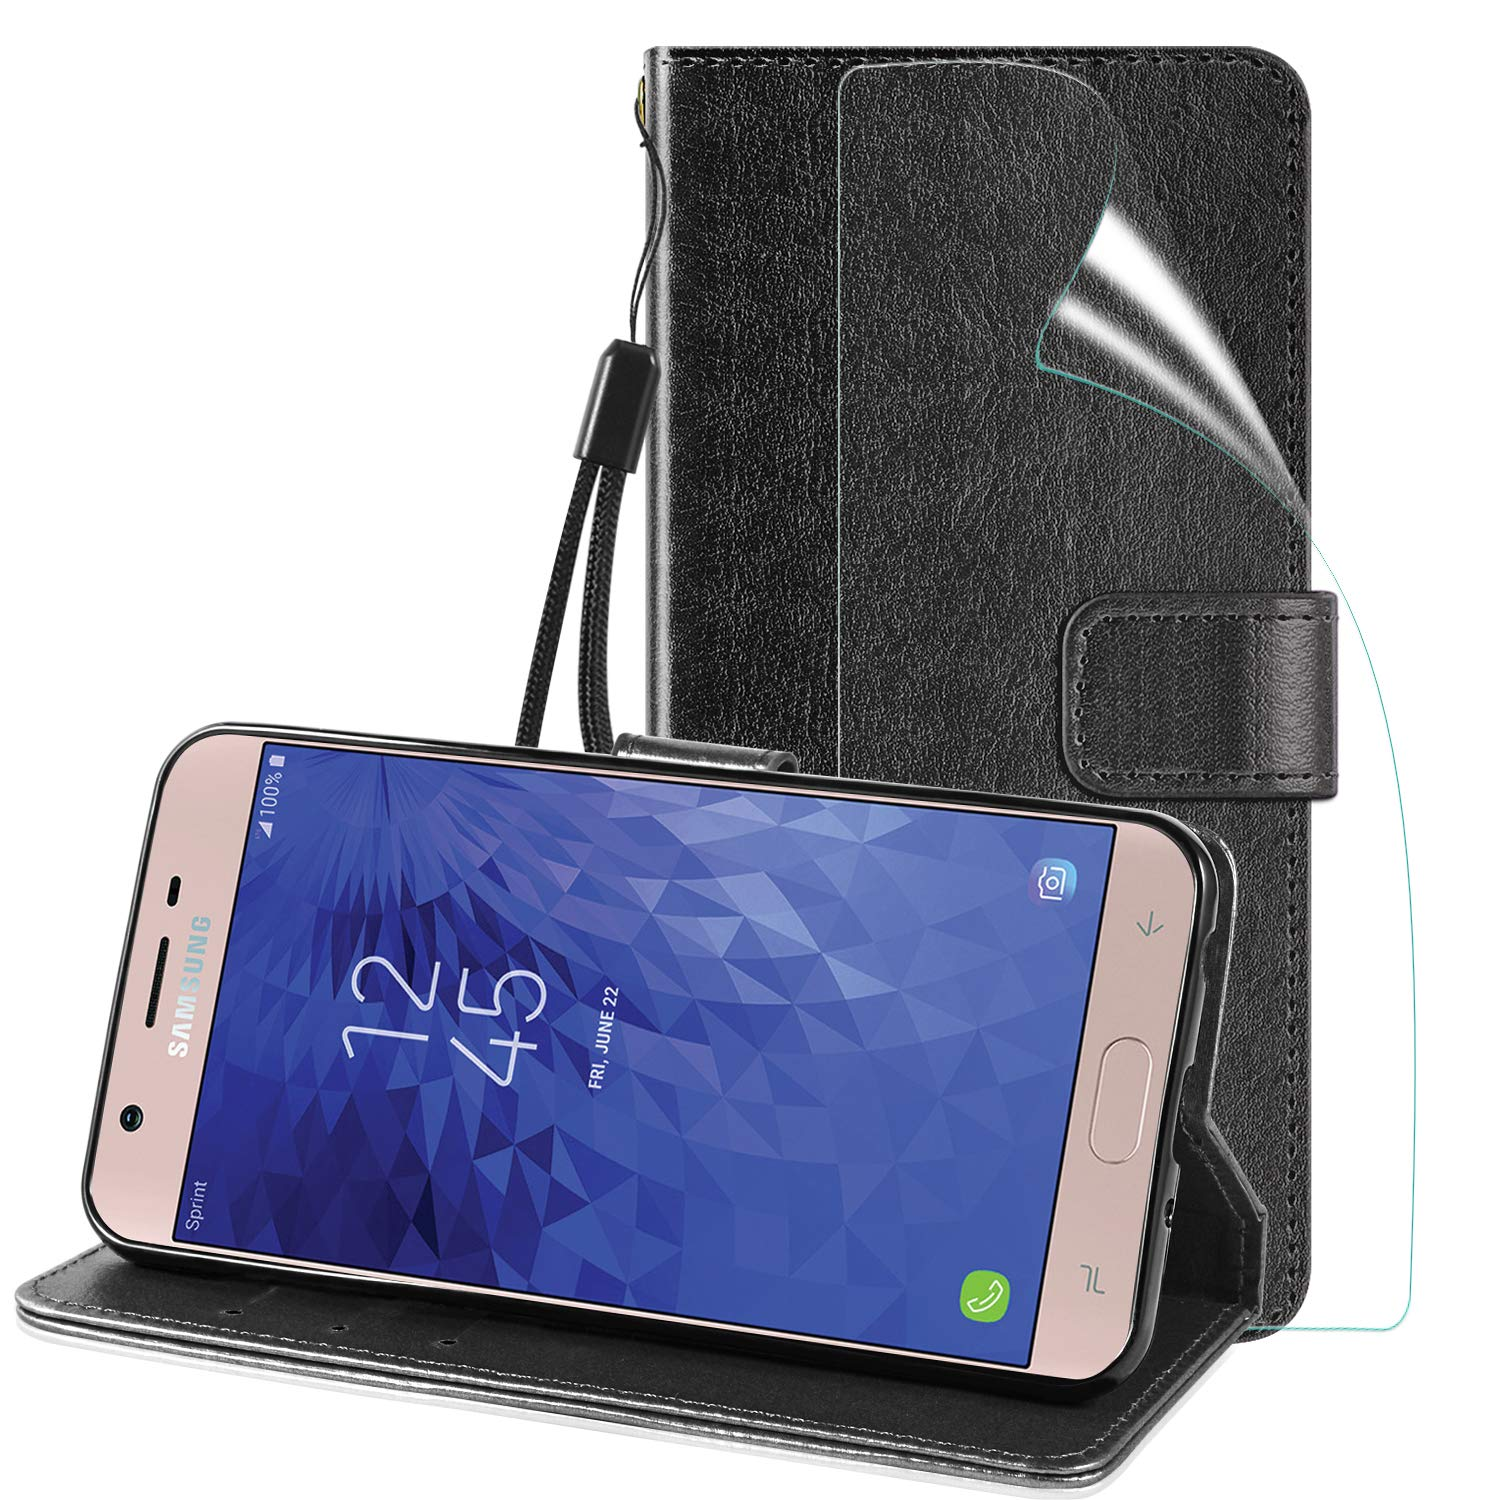 Samsung Galaxy J3 2018 Case, OEAGO Shock Absorbing Hard Ultra Protective Heavy Duty Case with Built-in Kickstand Holster Belt Clip and Build-in Screen Protector for Galaxy J3 Released in 2018 - Purple